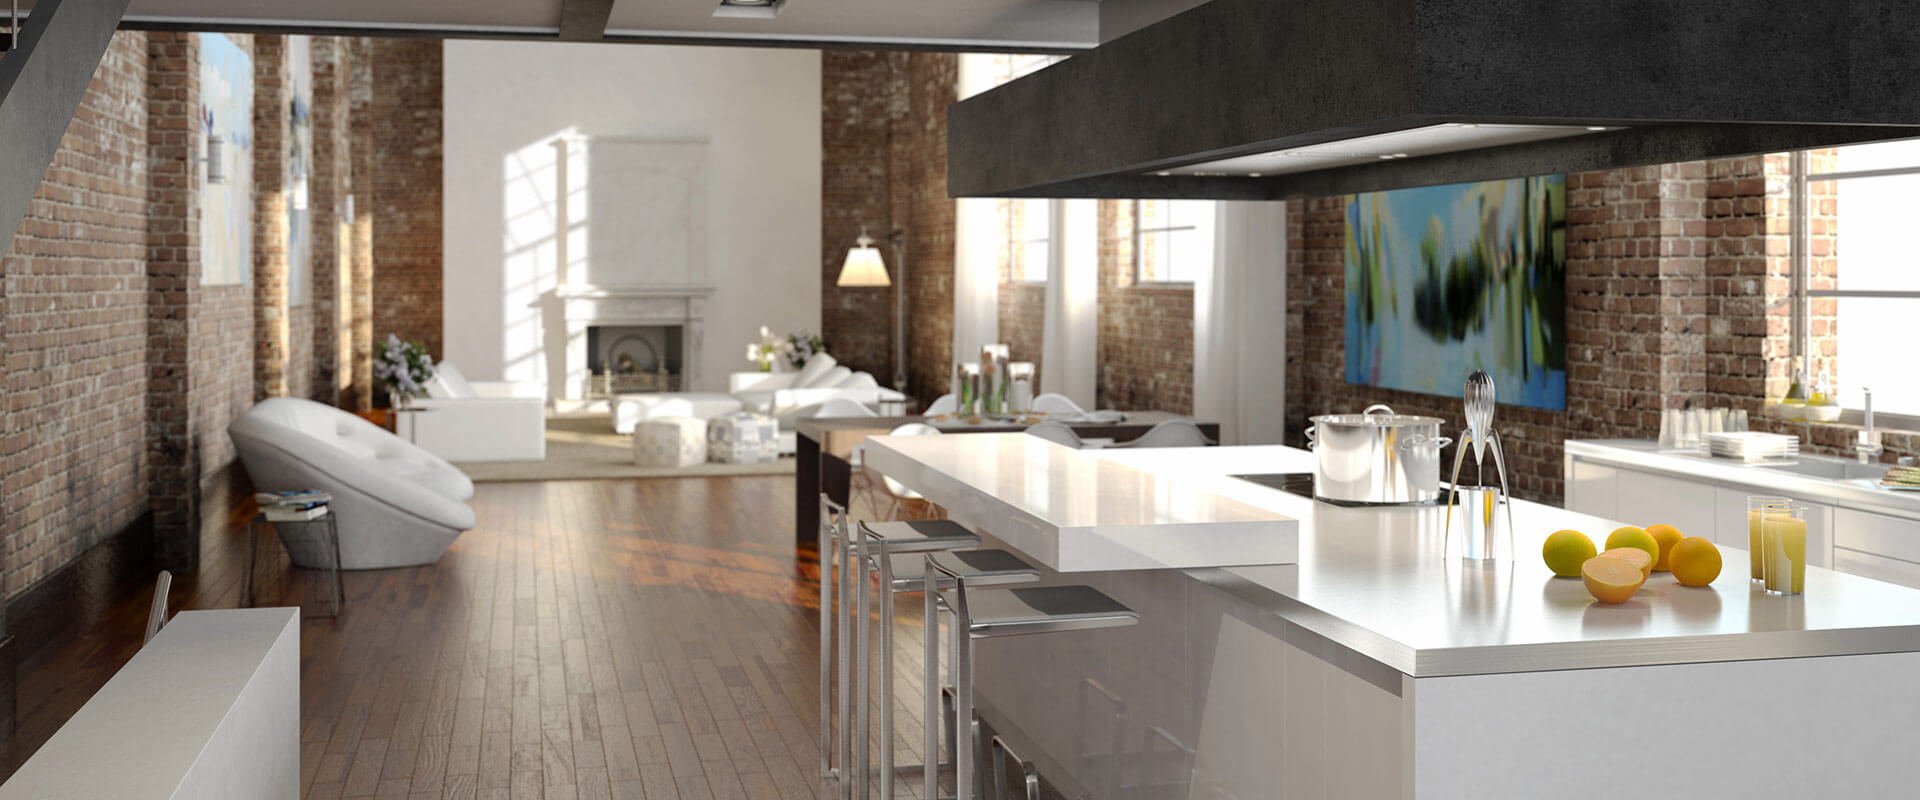 Brick Kitchen remodeled